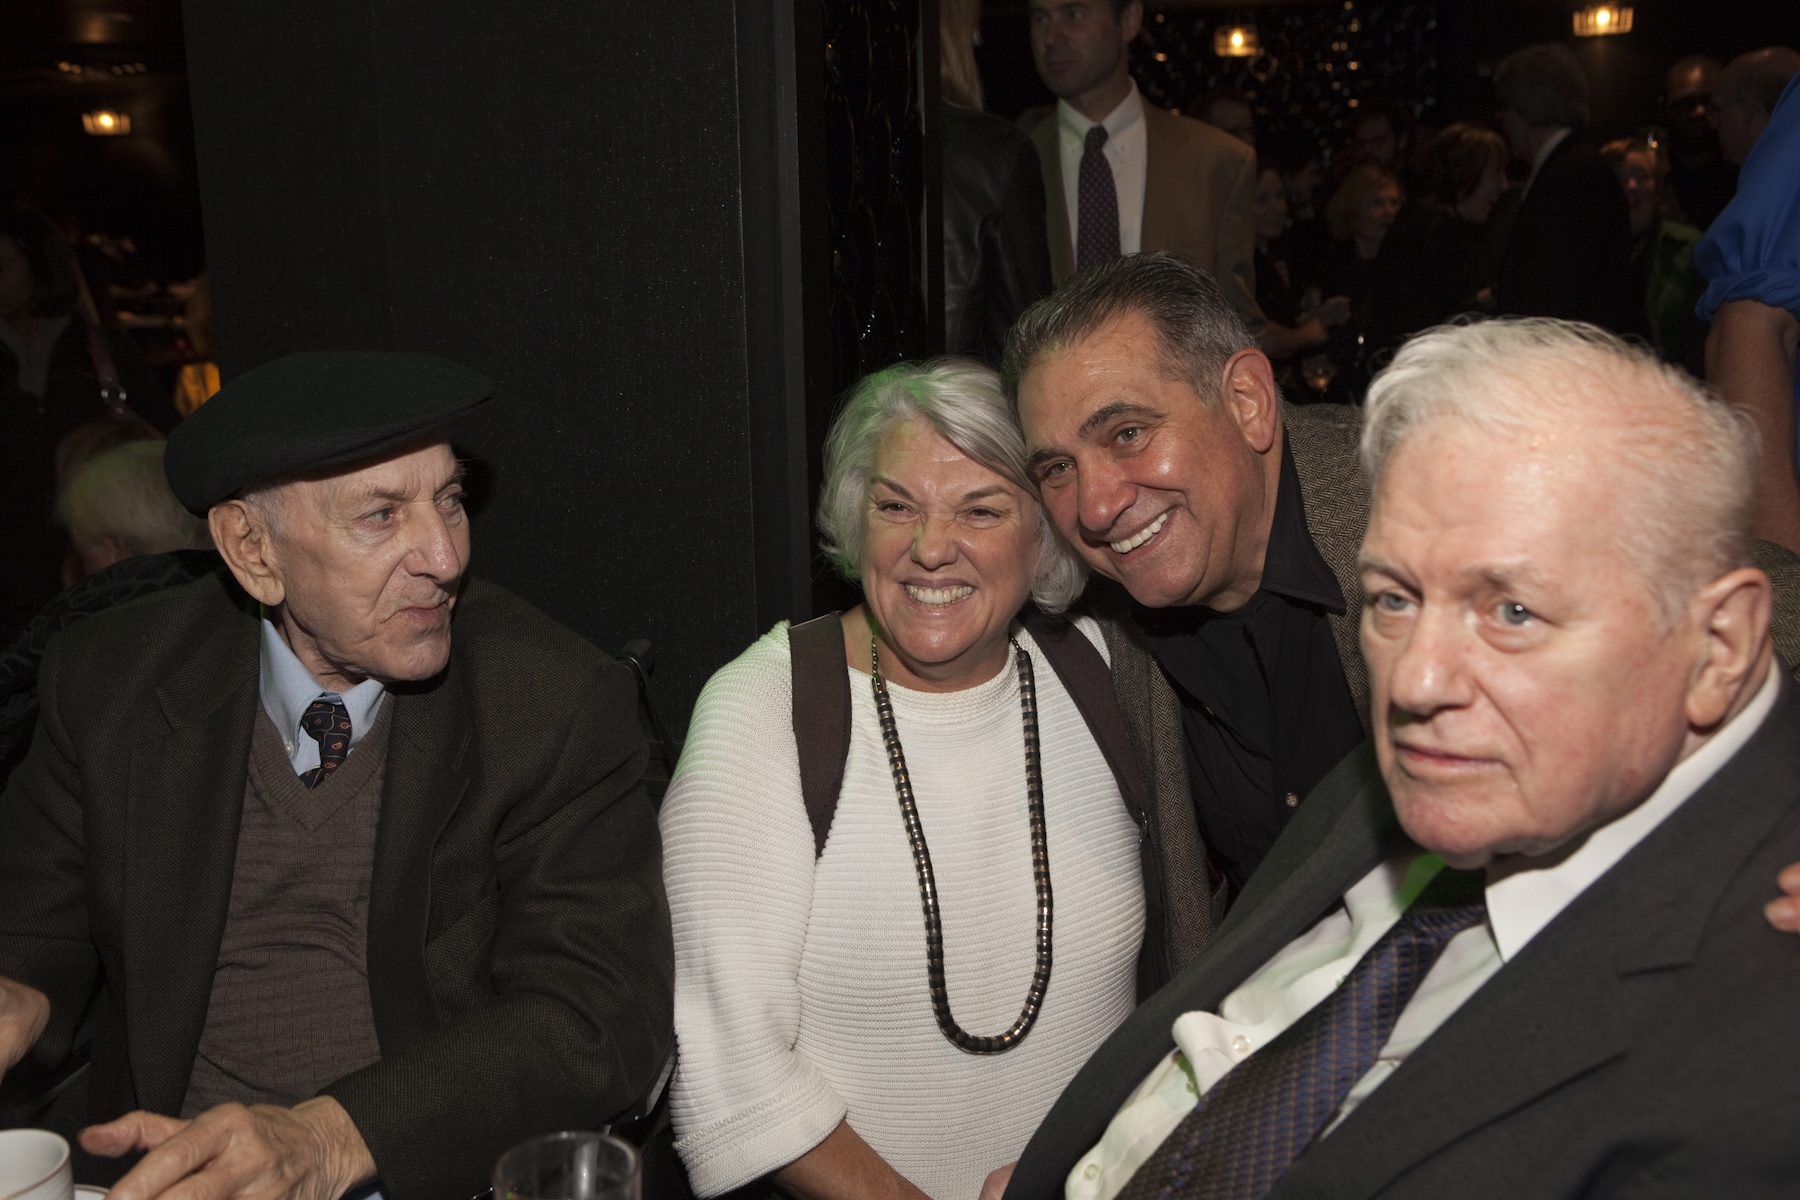 <div class='photo-info'><span class='counter'>4 of 18</span>Posted Oct 26, 2010</div><div class='photo-title'>Jack Klugman and friends</div><div class='photo-body'>Jack Klugman and friends with Dan Lauria on opening Night of LOMBARDI a new American Play on Broadway credit lombardibroadway.com</div>